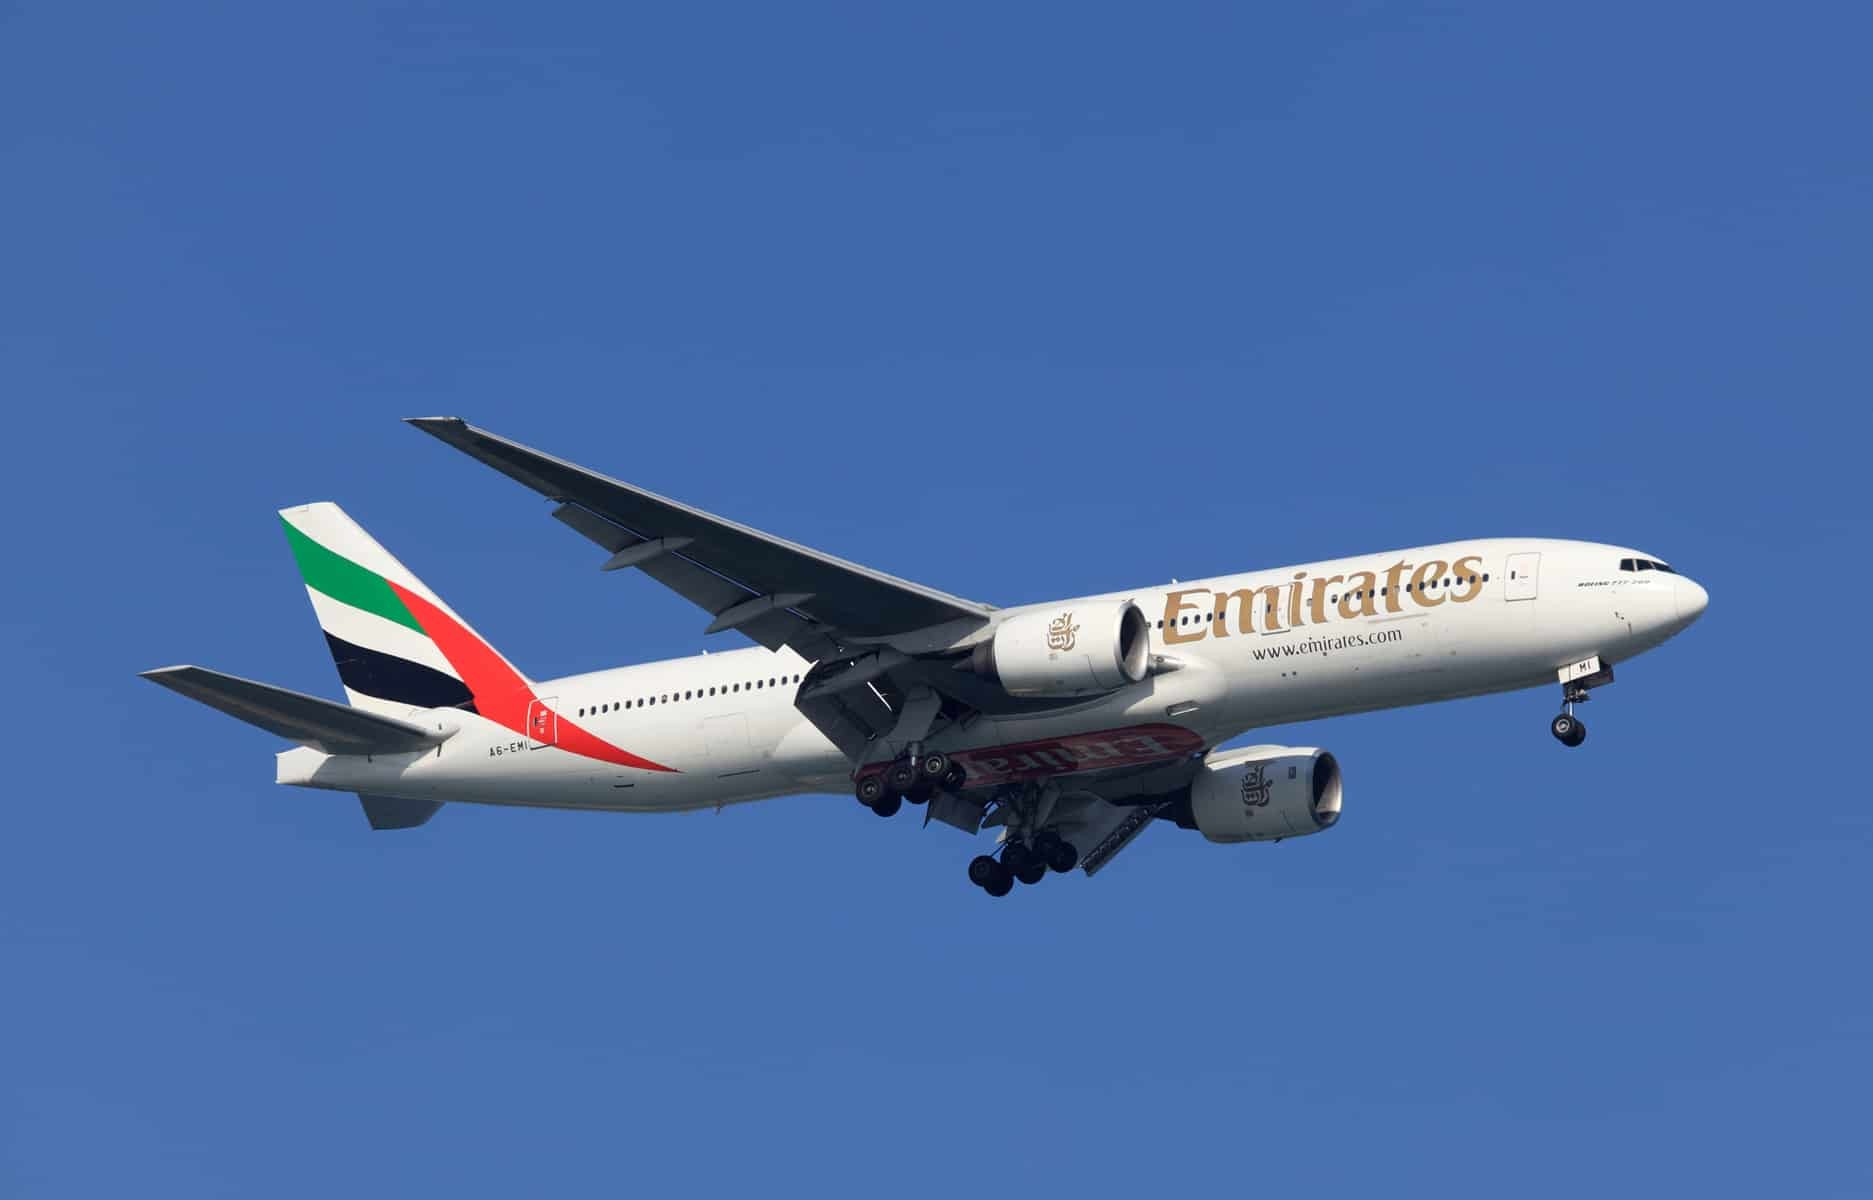 Boeing 777-200 of Emirates Airlines preparing for landing in Doha, Qatar.